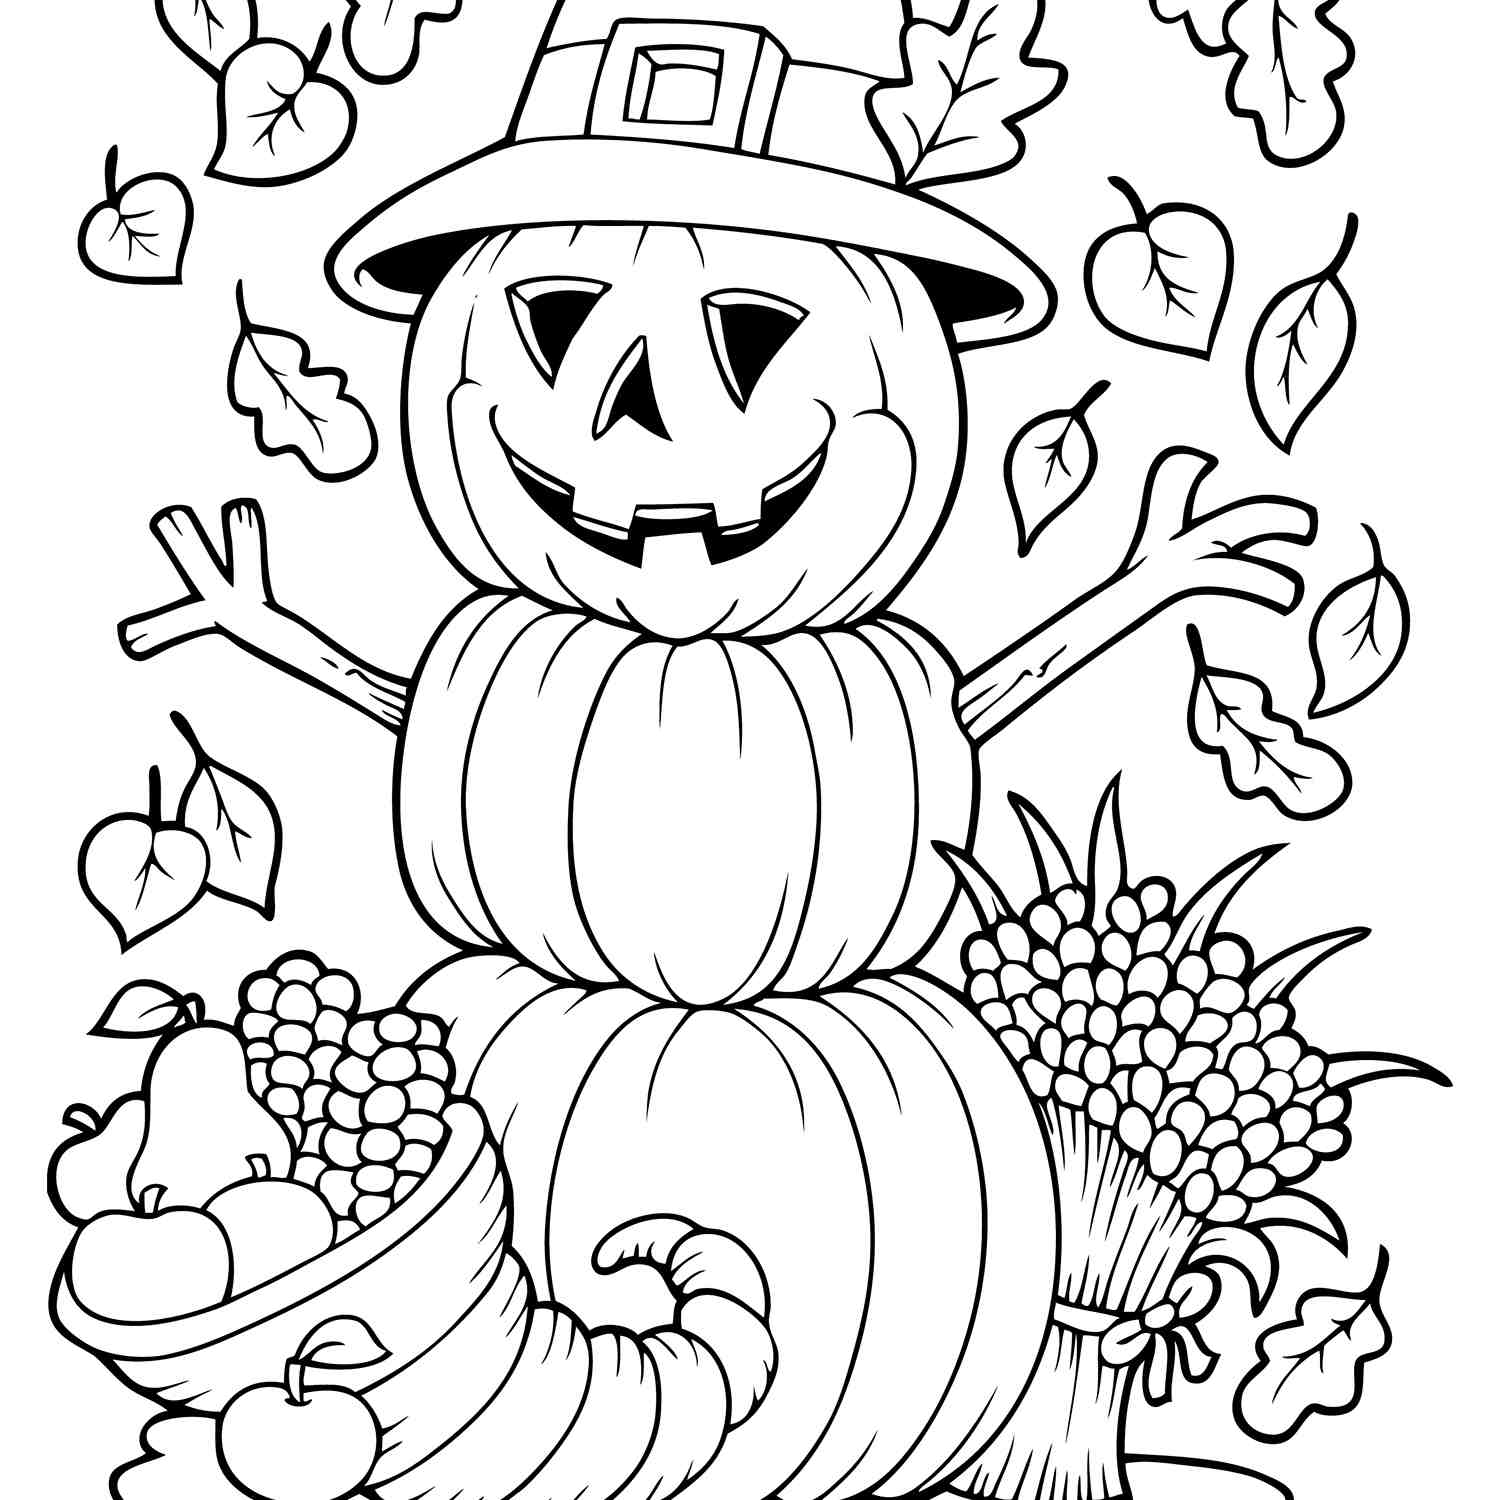 fall coloring sheets printable autumn harvest coloring page free printable coloring pages sheets fall printable coloring